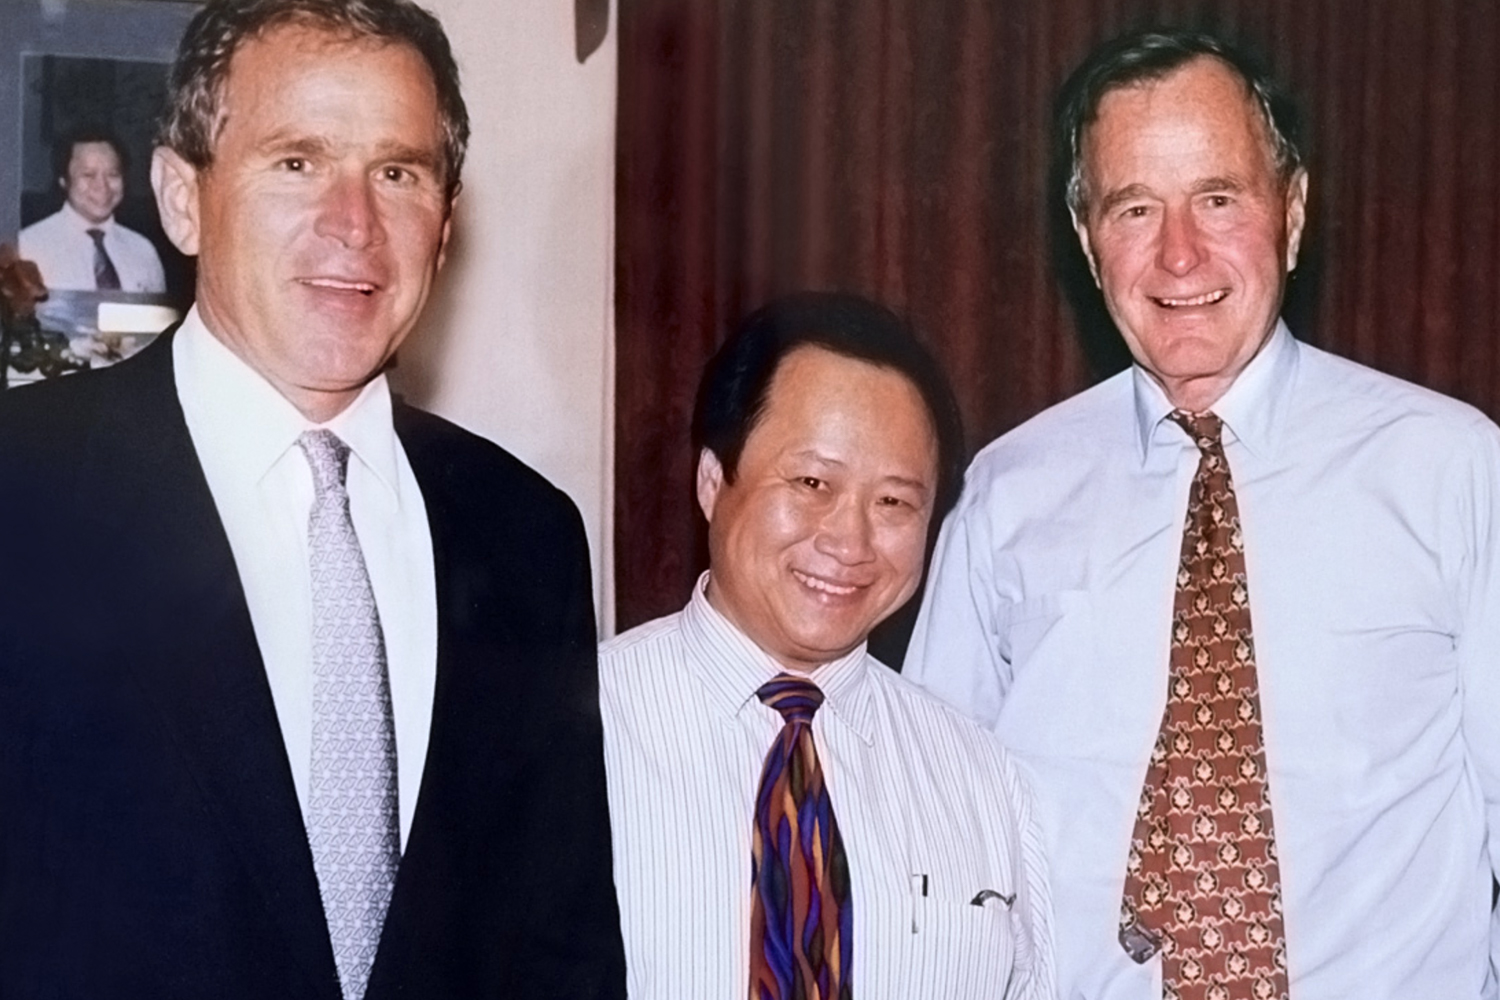 Presidents George Bush and George W. Bush with the owner of Peking Gourmet Inn.